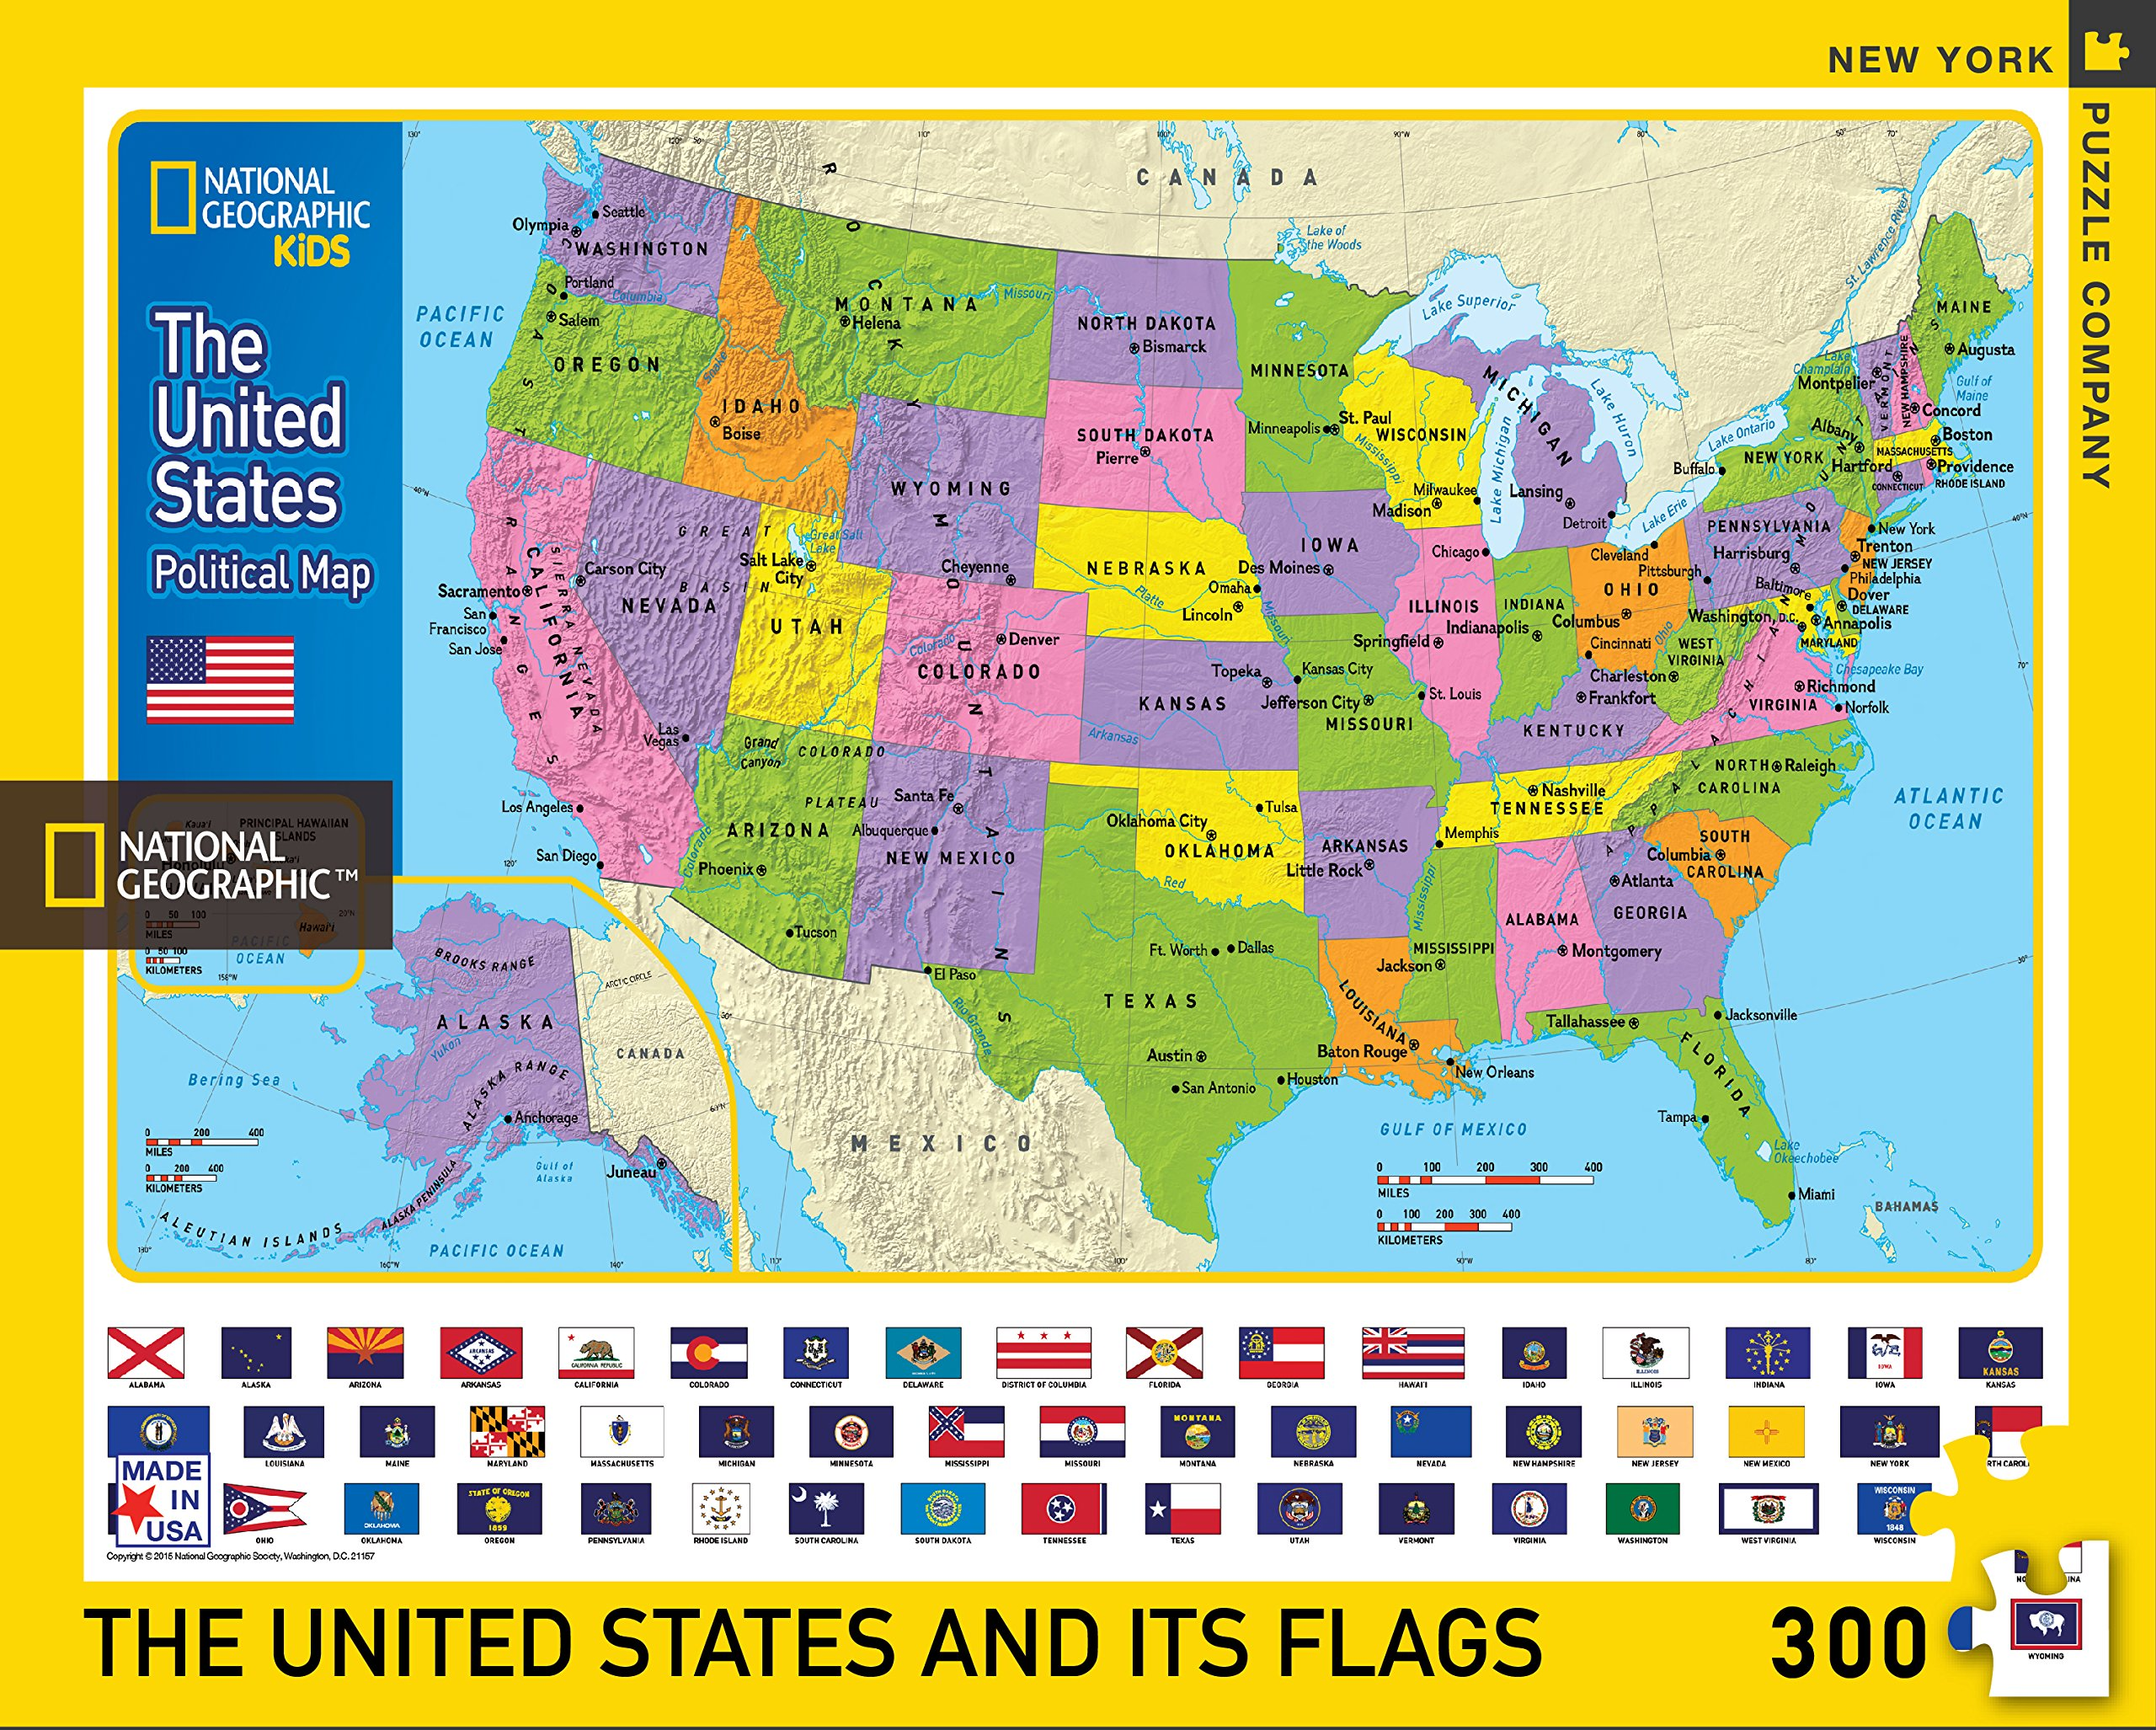 United states map jigsaw puzzle jigsaw puzzles for adults this national geographic 300 piece united states map jigsaw puzzle measures 18 inches by 24 inches when finished gumiabroncs Gallery